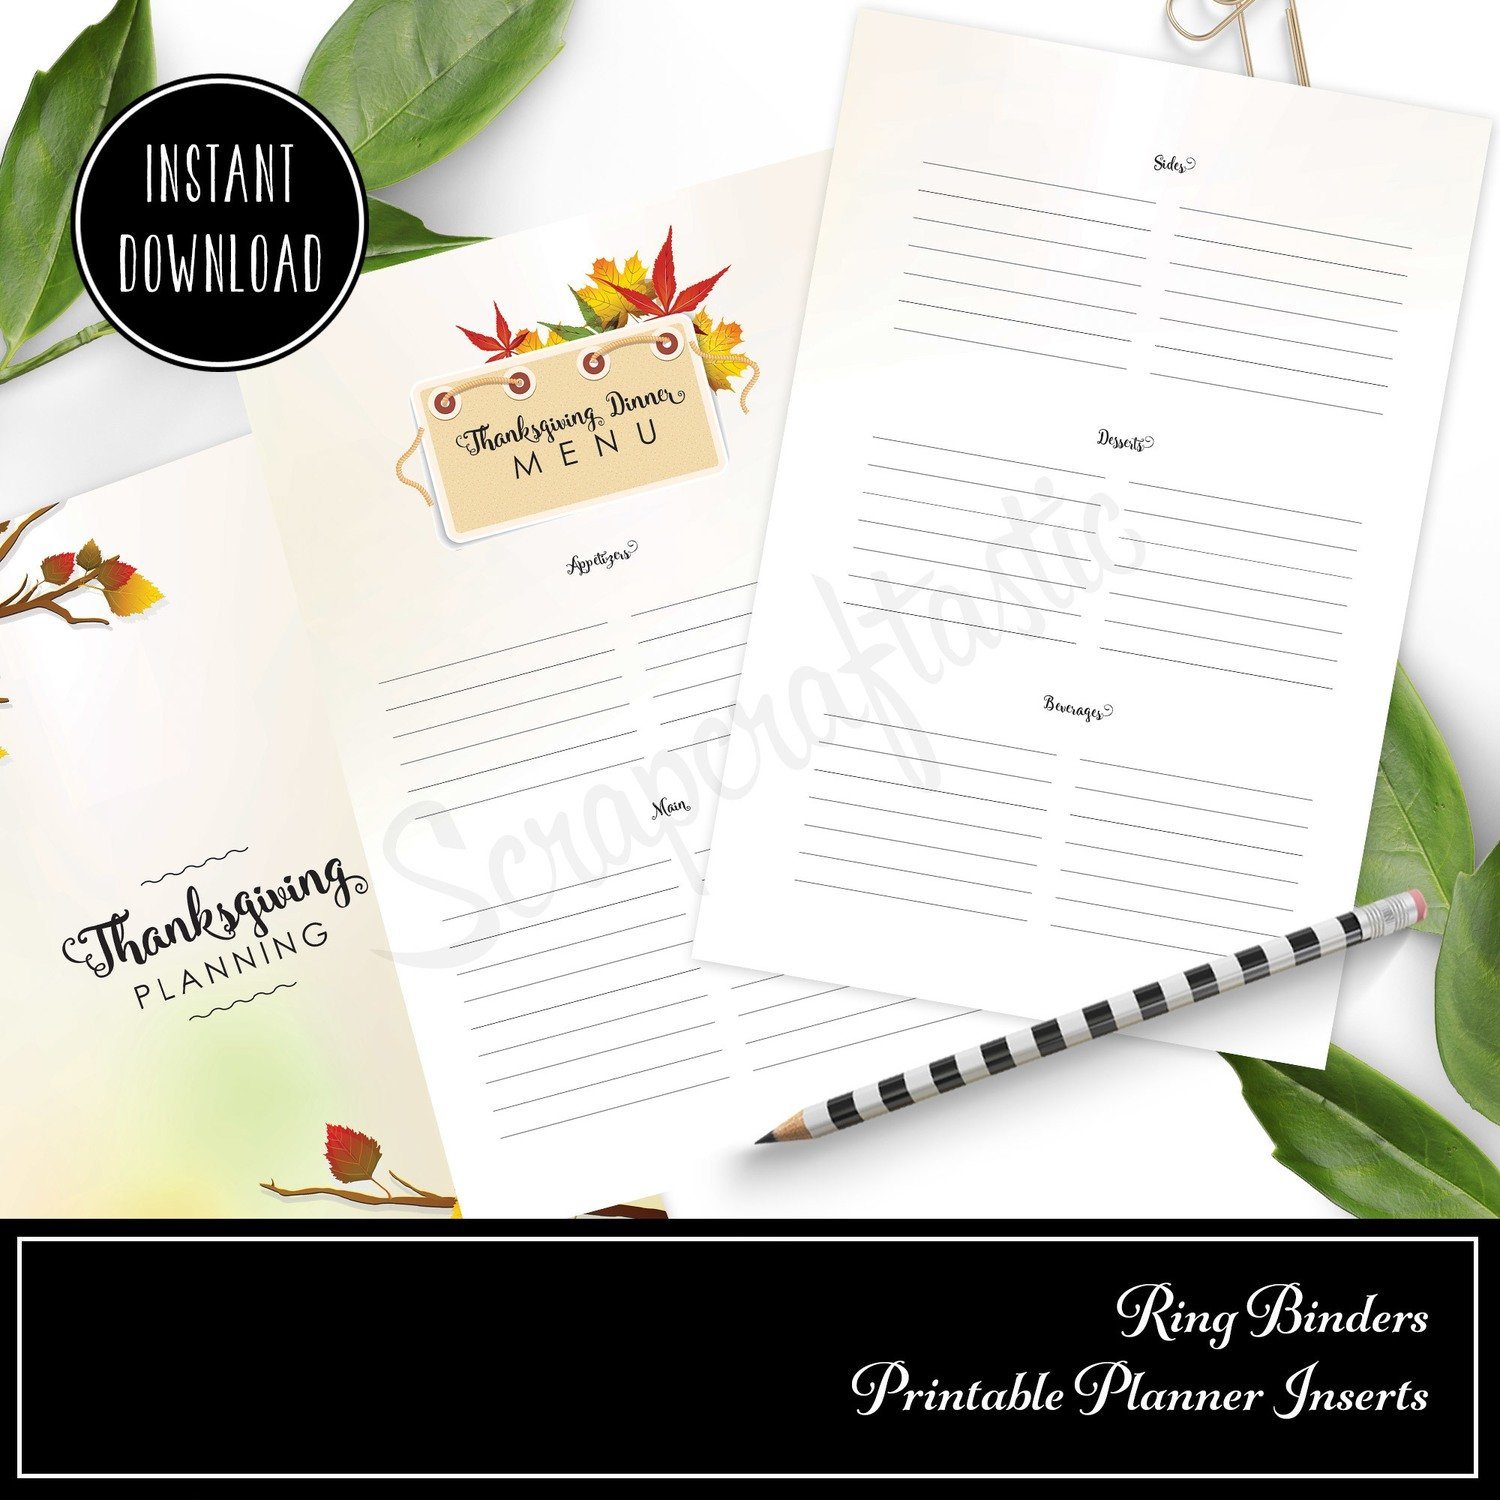 graphic regarding Thanksgiving Planner Printable named 50 % LETTER TN or RINGS - Thanksgiving Coming up with Printable Include (Binder or Travellers Laptop computer)